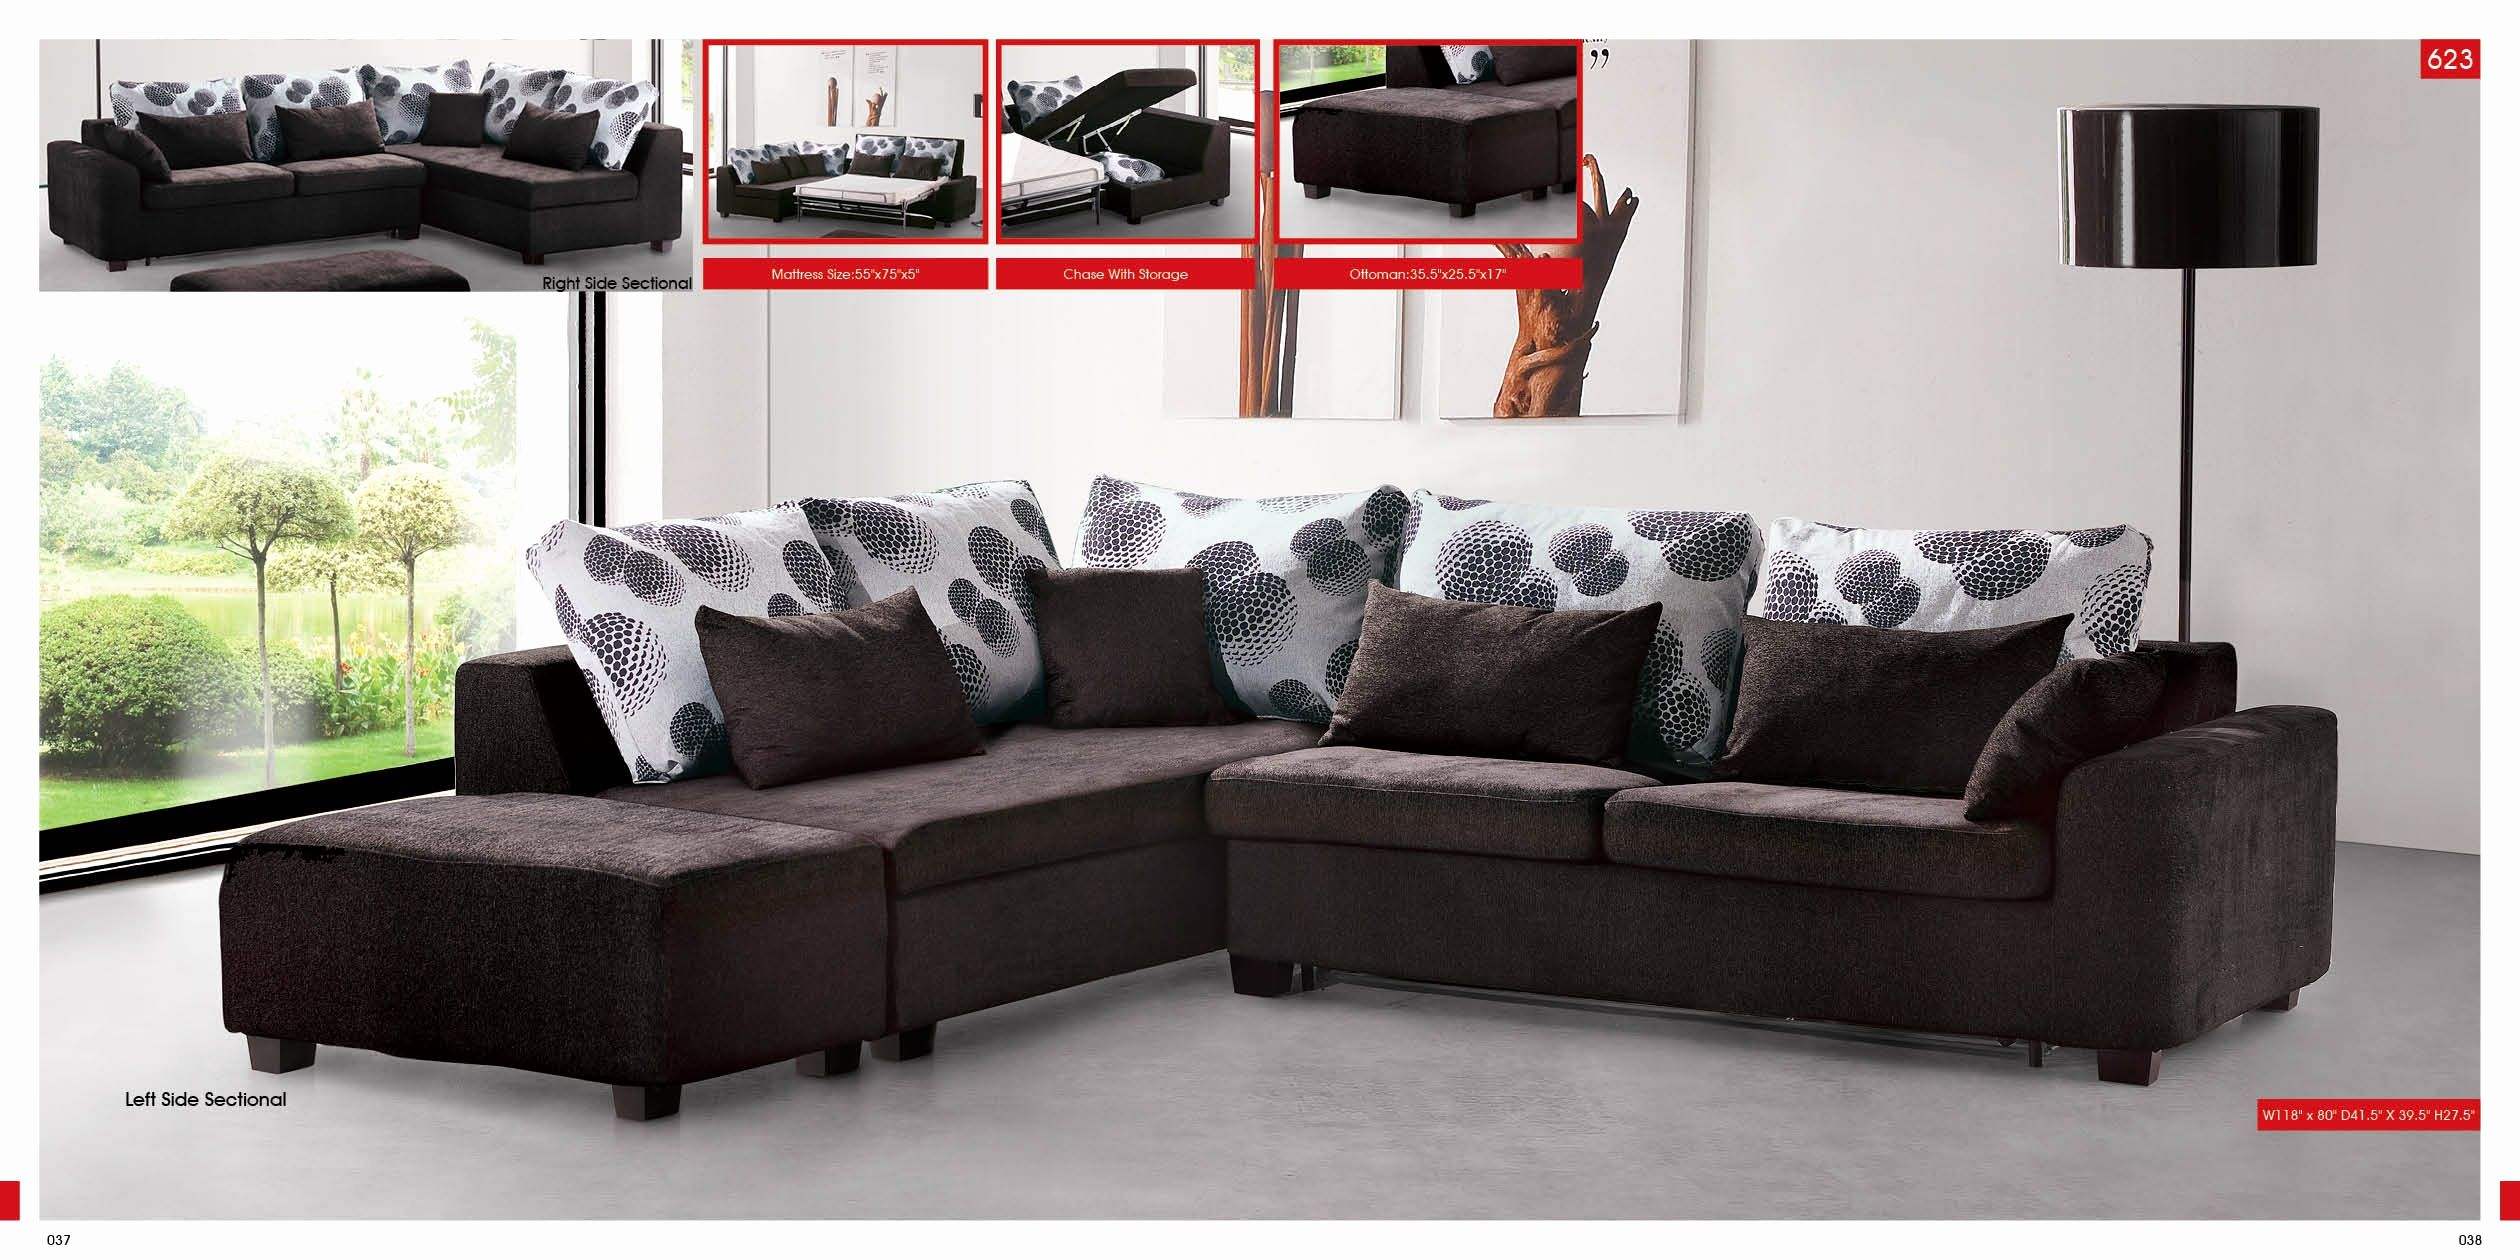 Awesome Sofa Bed Living Room Sets Picture Luxury